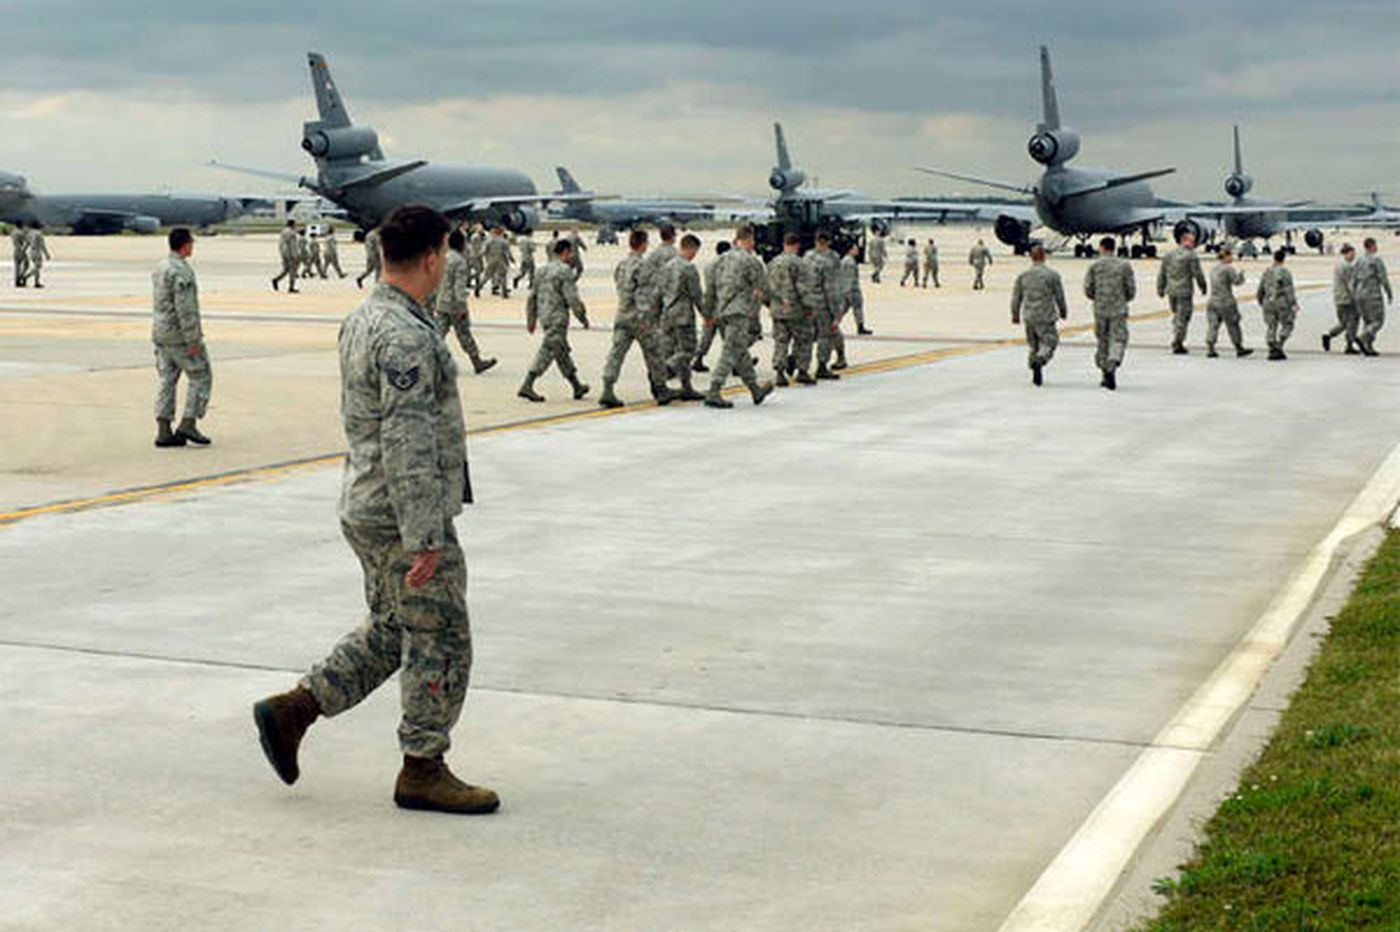 Massive N.J. base helps Liberia fight Ebola, and the drive against ISIS